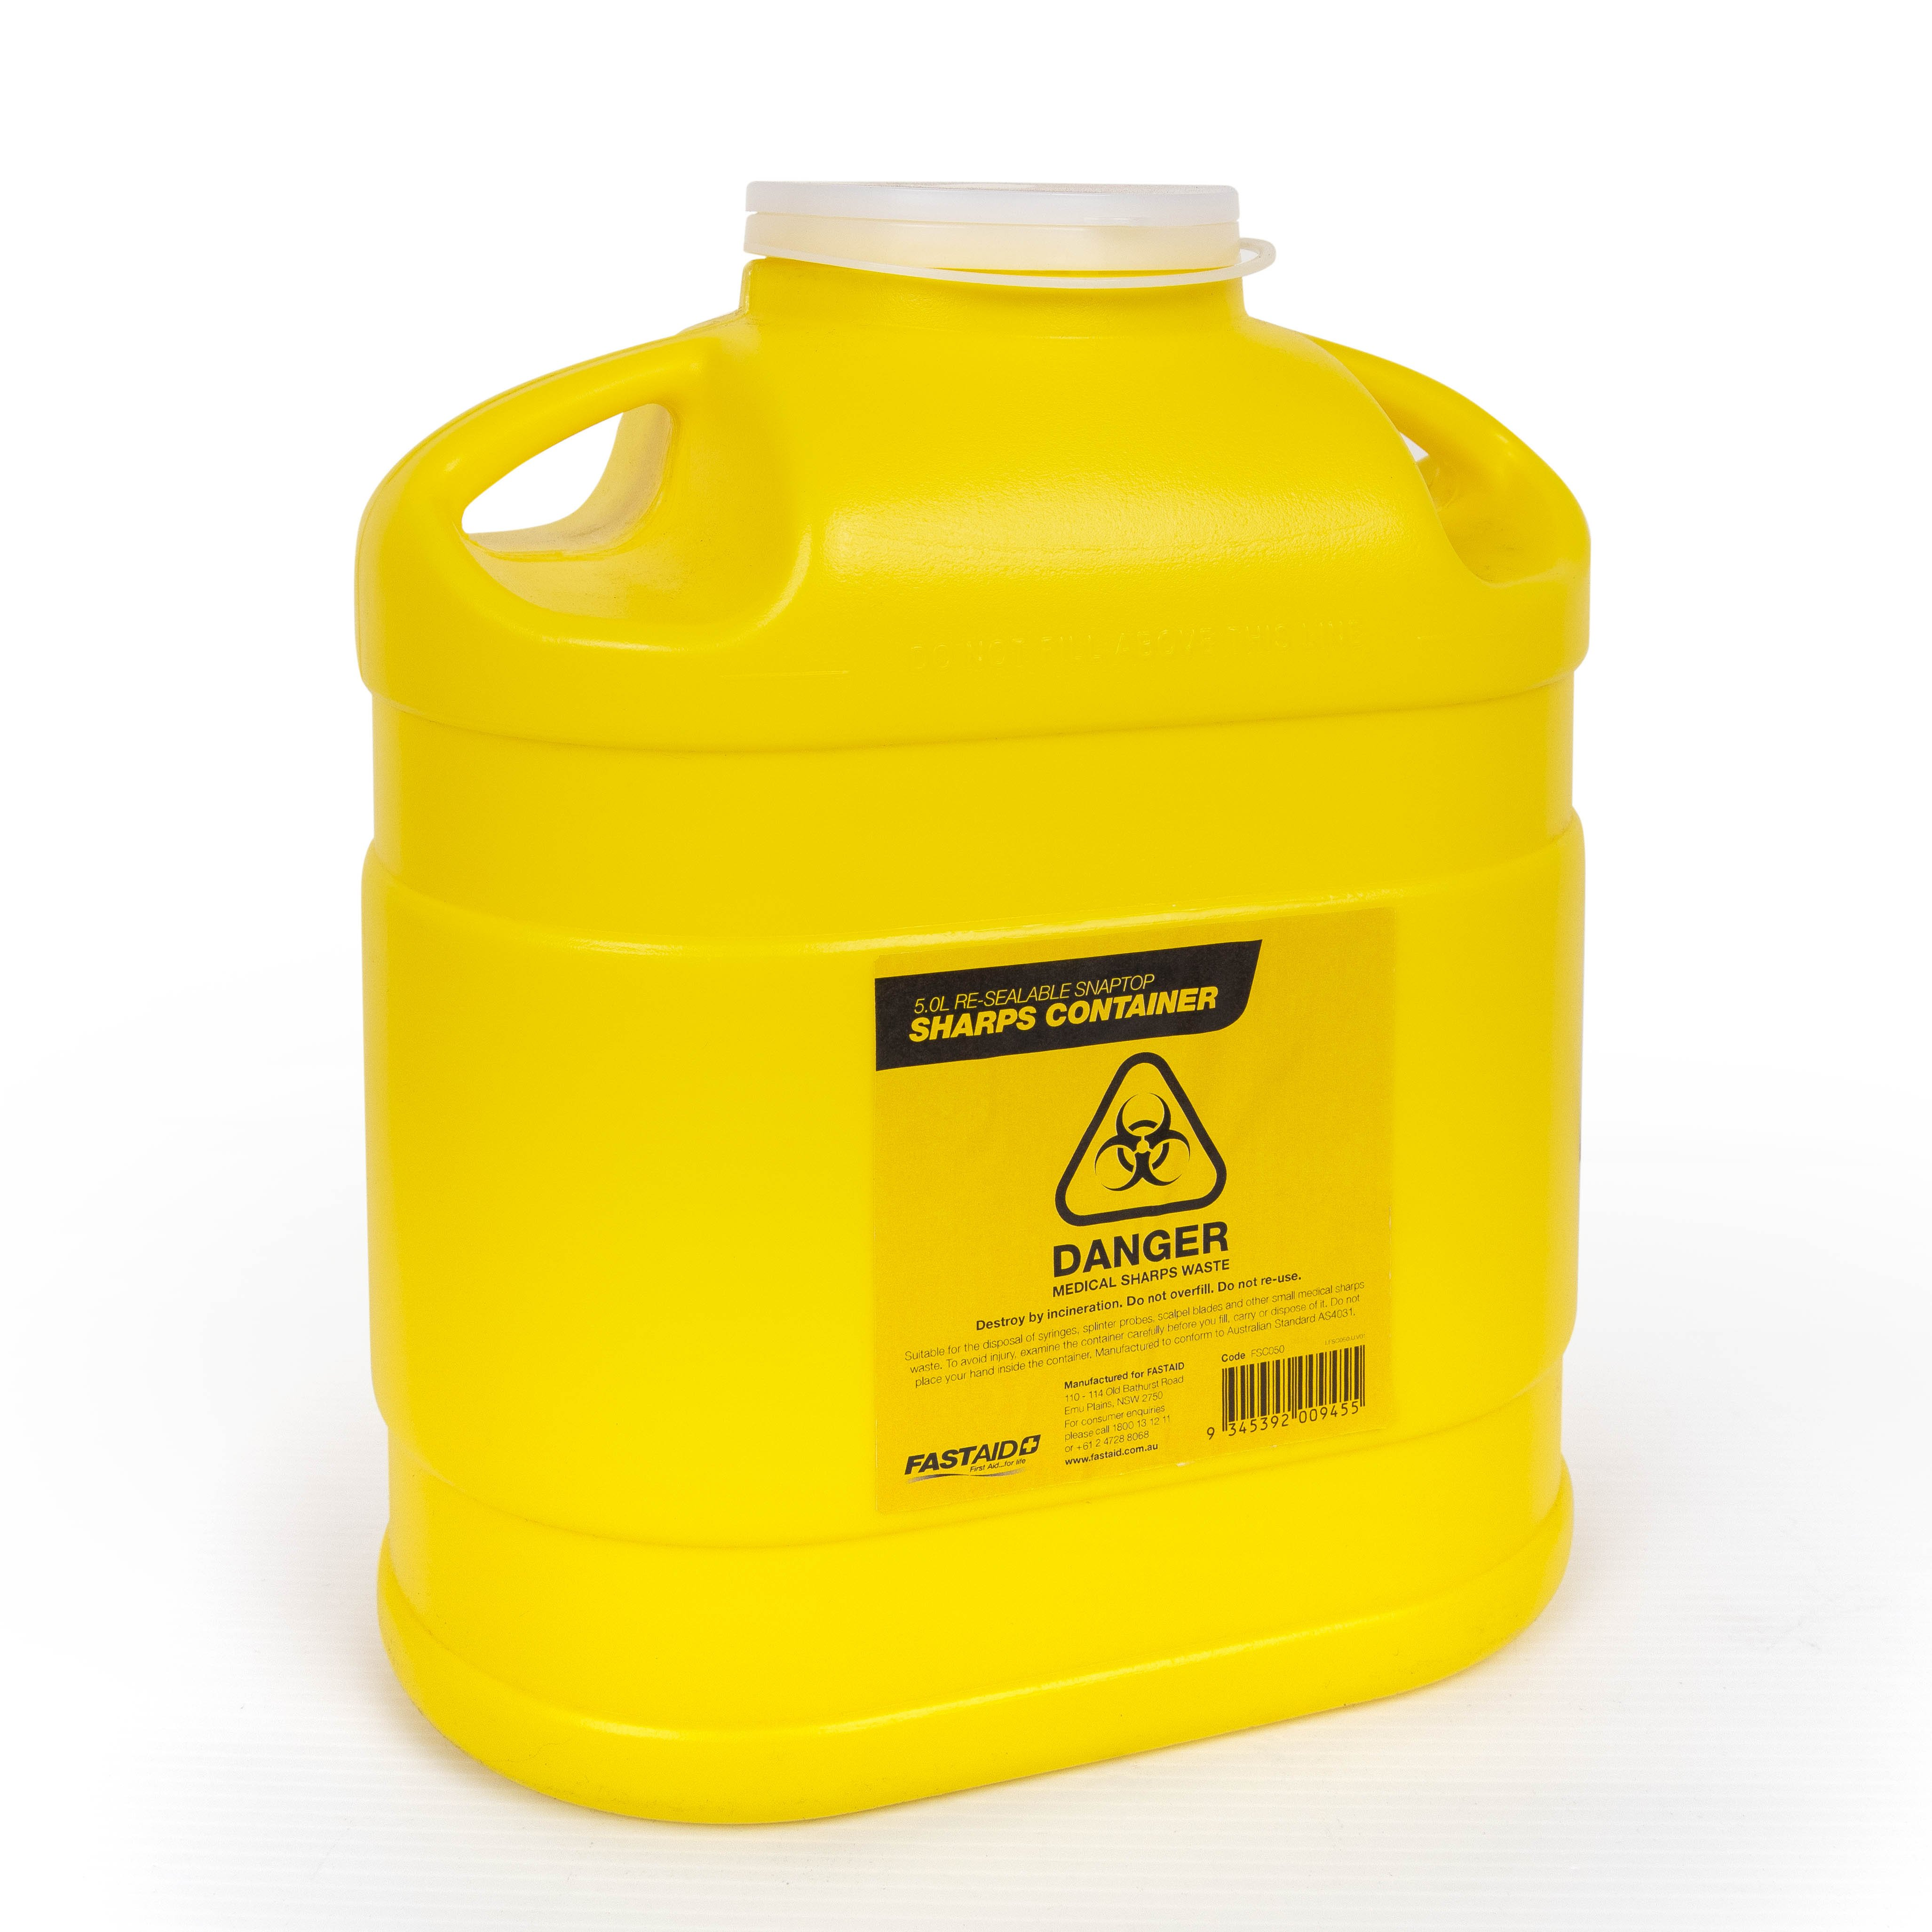 Plastic Sharps Container, 5L